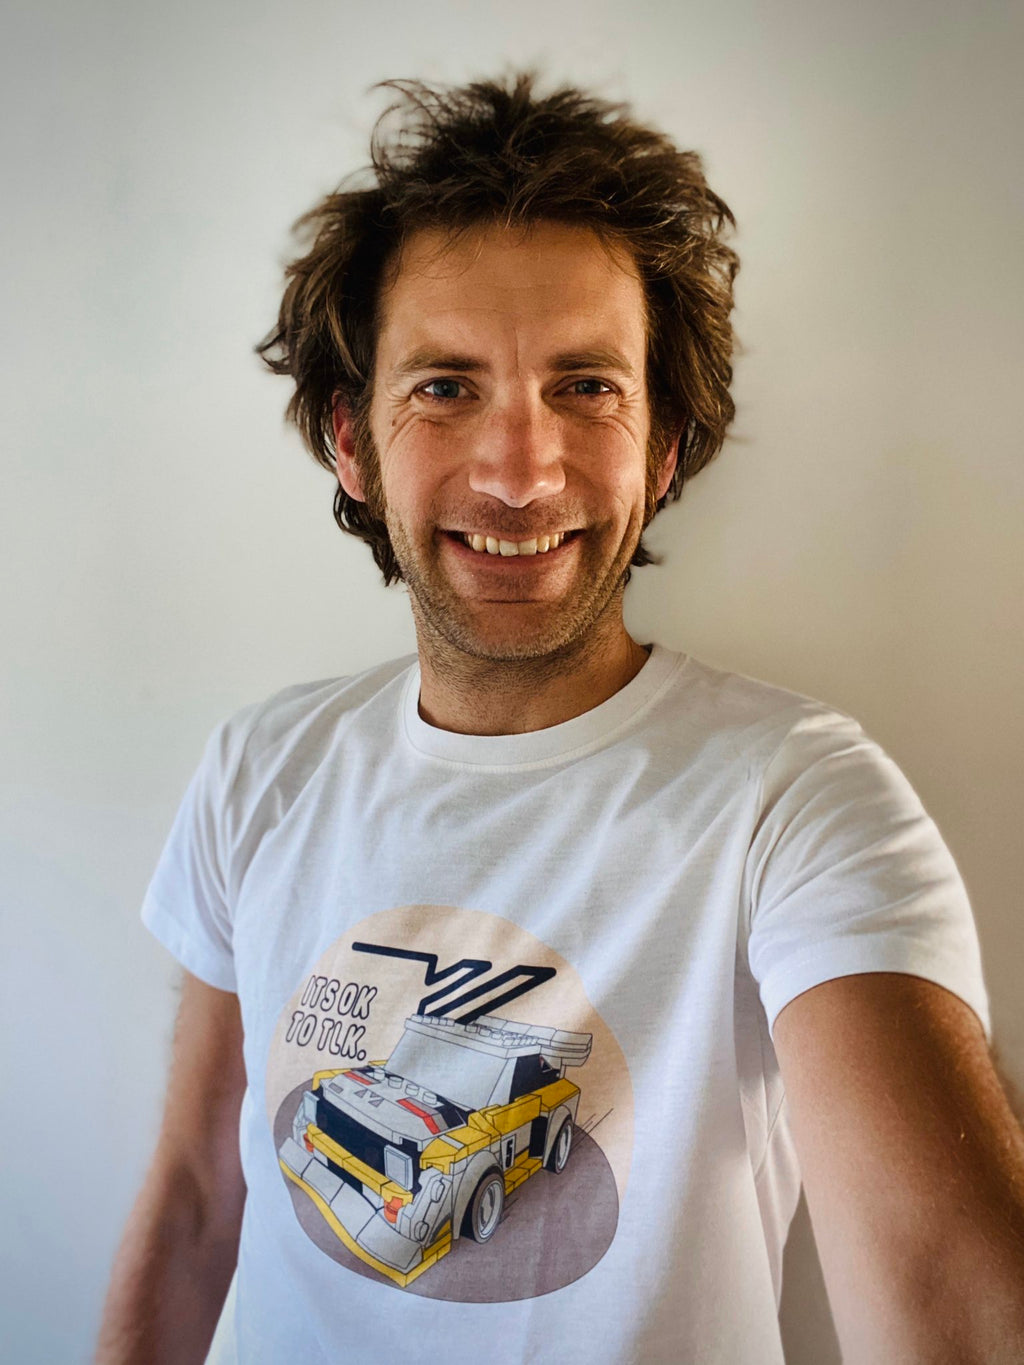 Motoring Journalist Henry Catchpole selfie wearing his LEGO Audi Quattro drawing t-shirt.